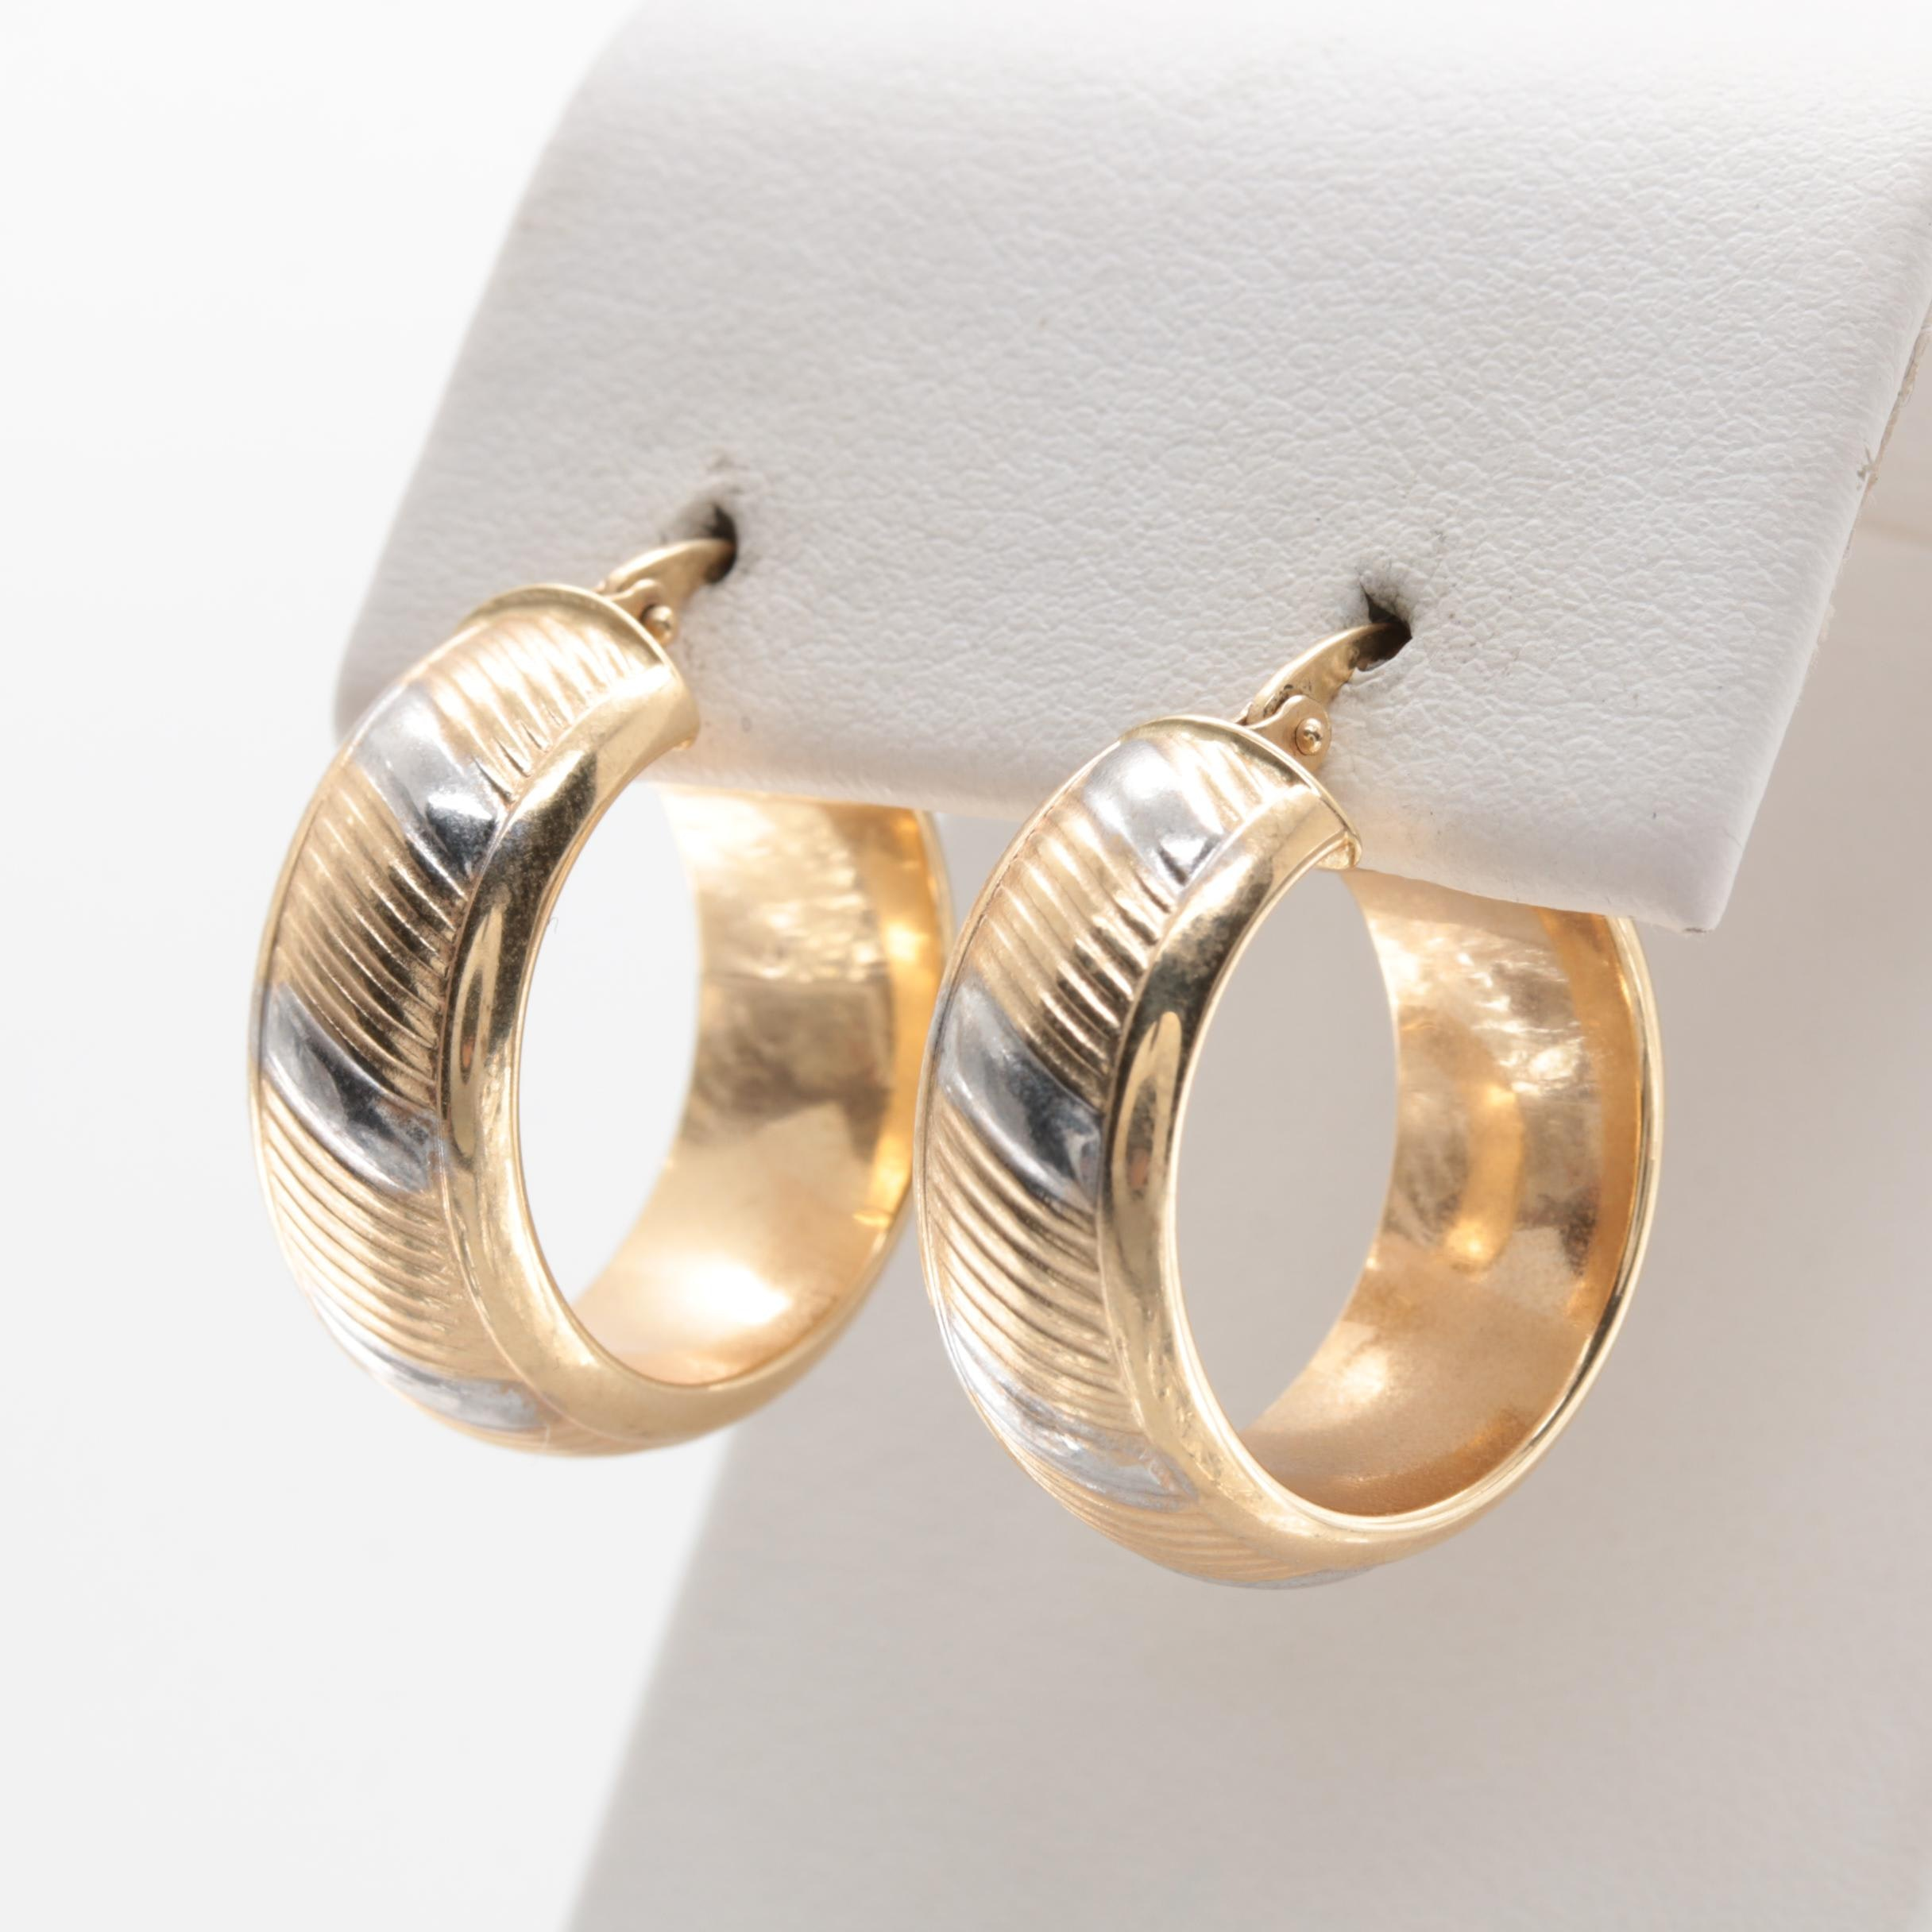 14K Yellow Gold Hoop Earrings With White Gold Accents